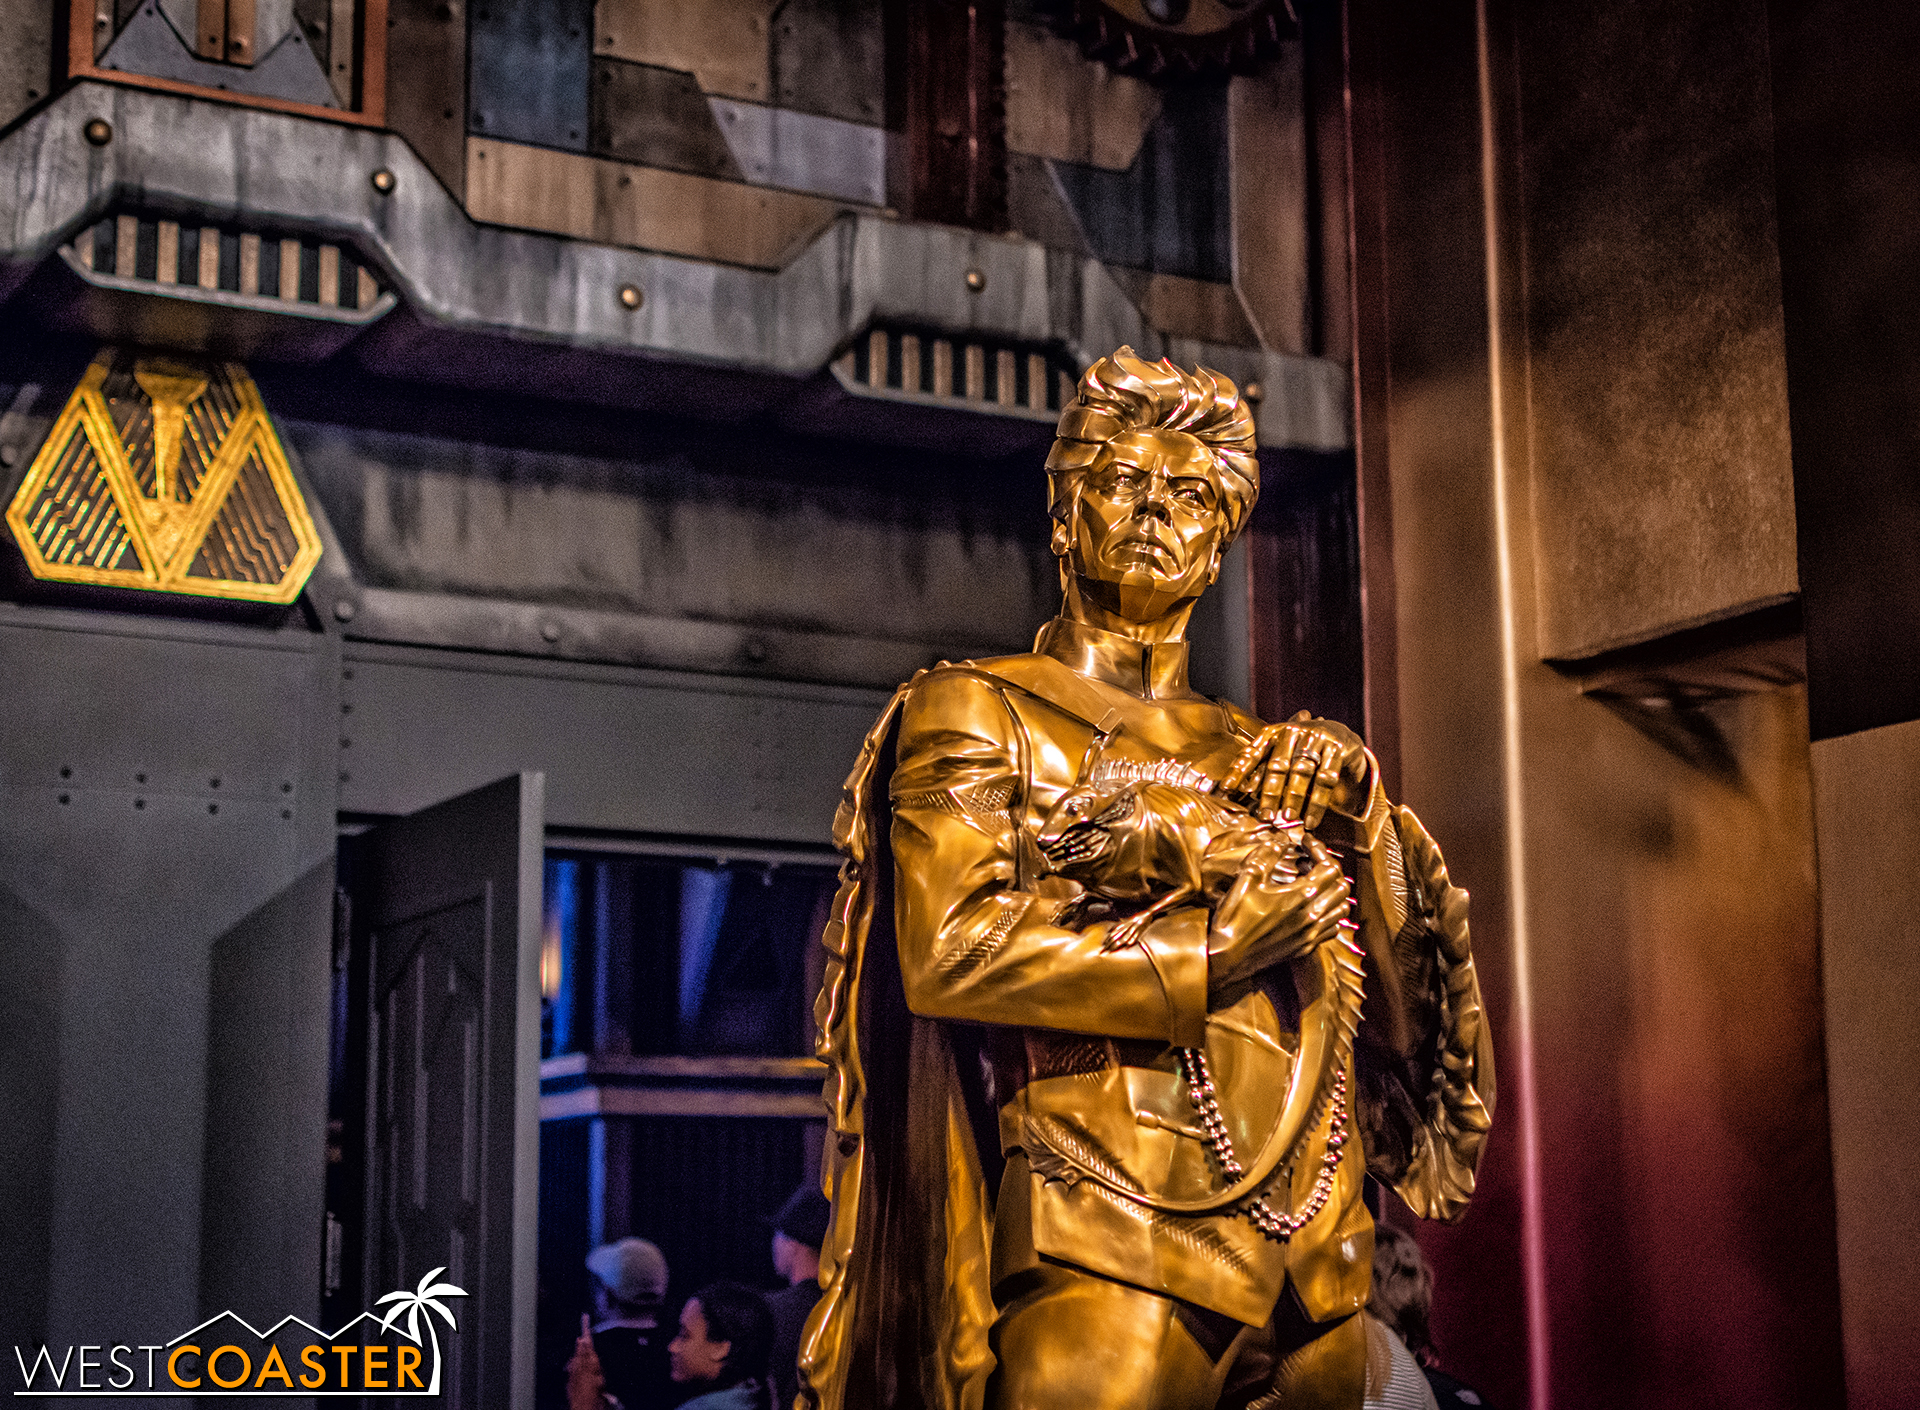 A golden statue of Taneleer Tivan stands guard at the entrance.  (Photo courtesy of Brandon Joseph of   DizFeed  .)